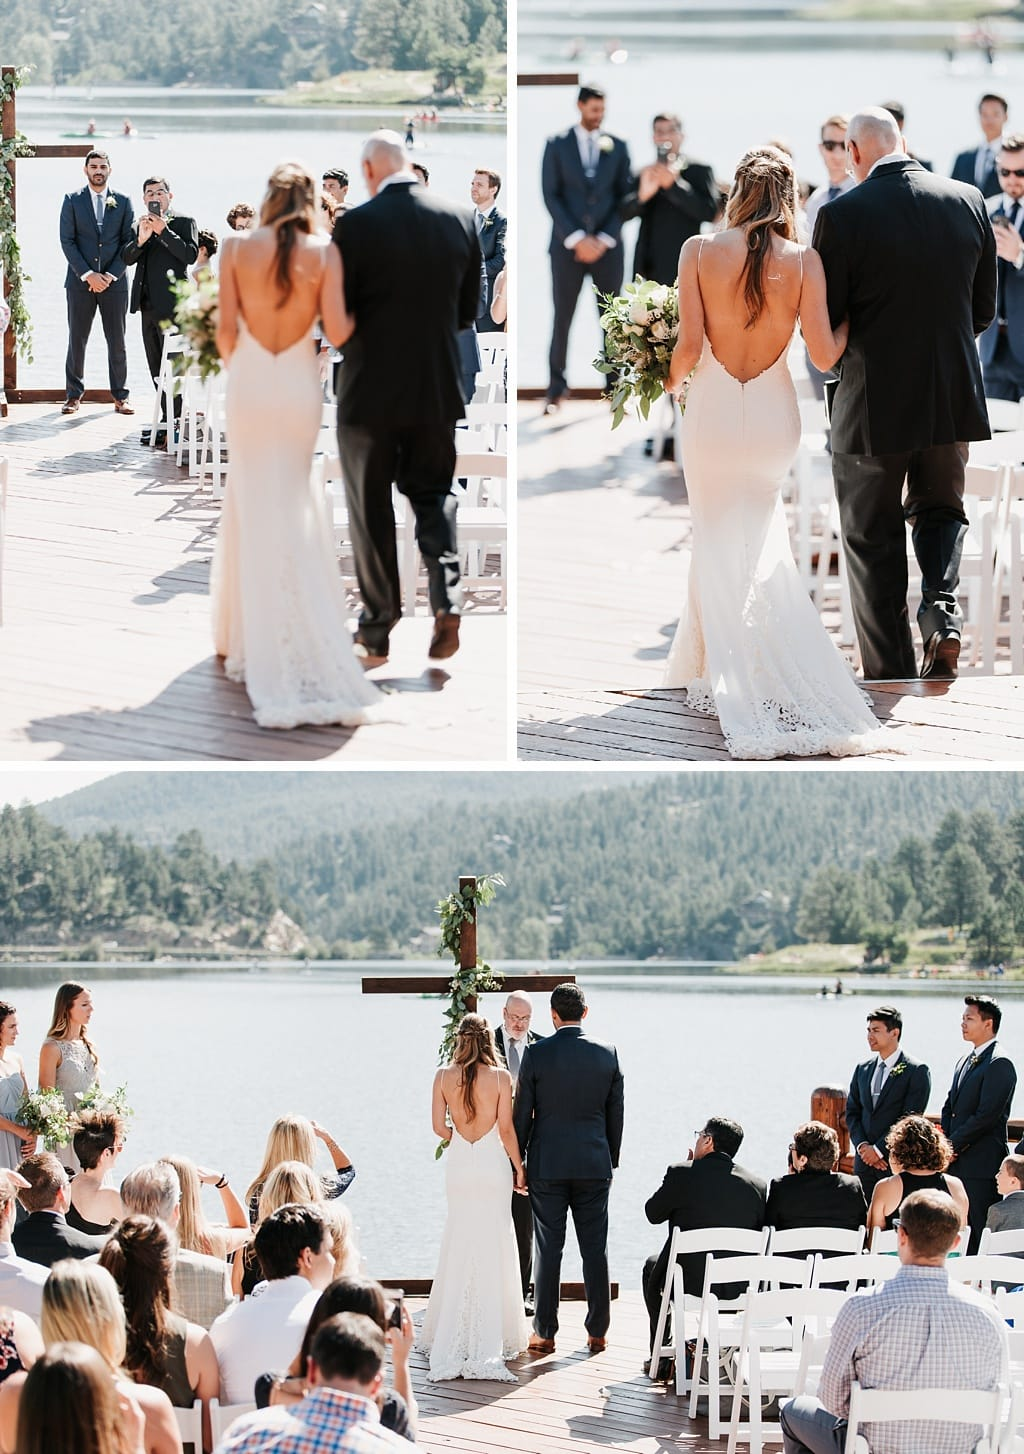 Evergreen Lake House Brunch Wedding Colorado bride walking down the aisle to groom outdoor mountain lakeside ceremony